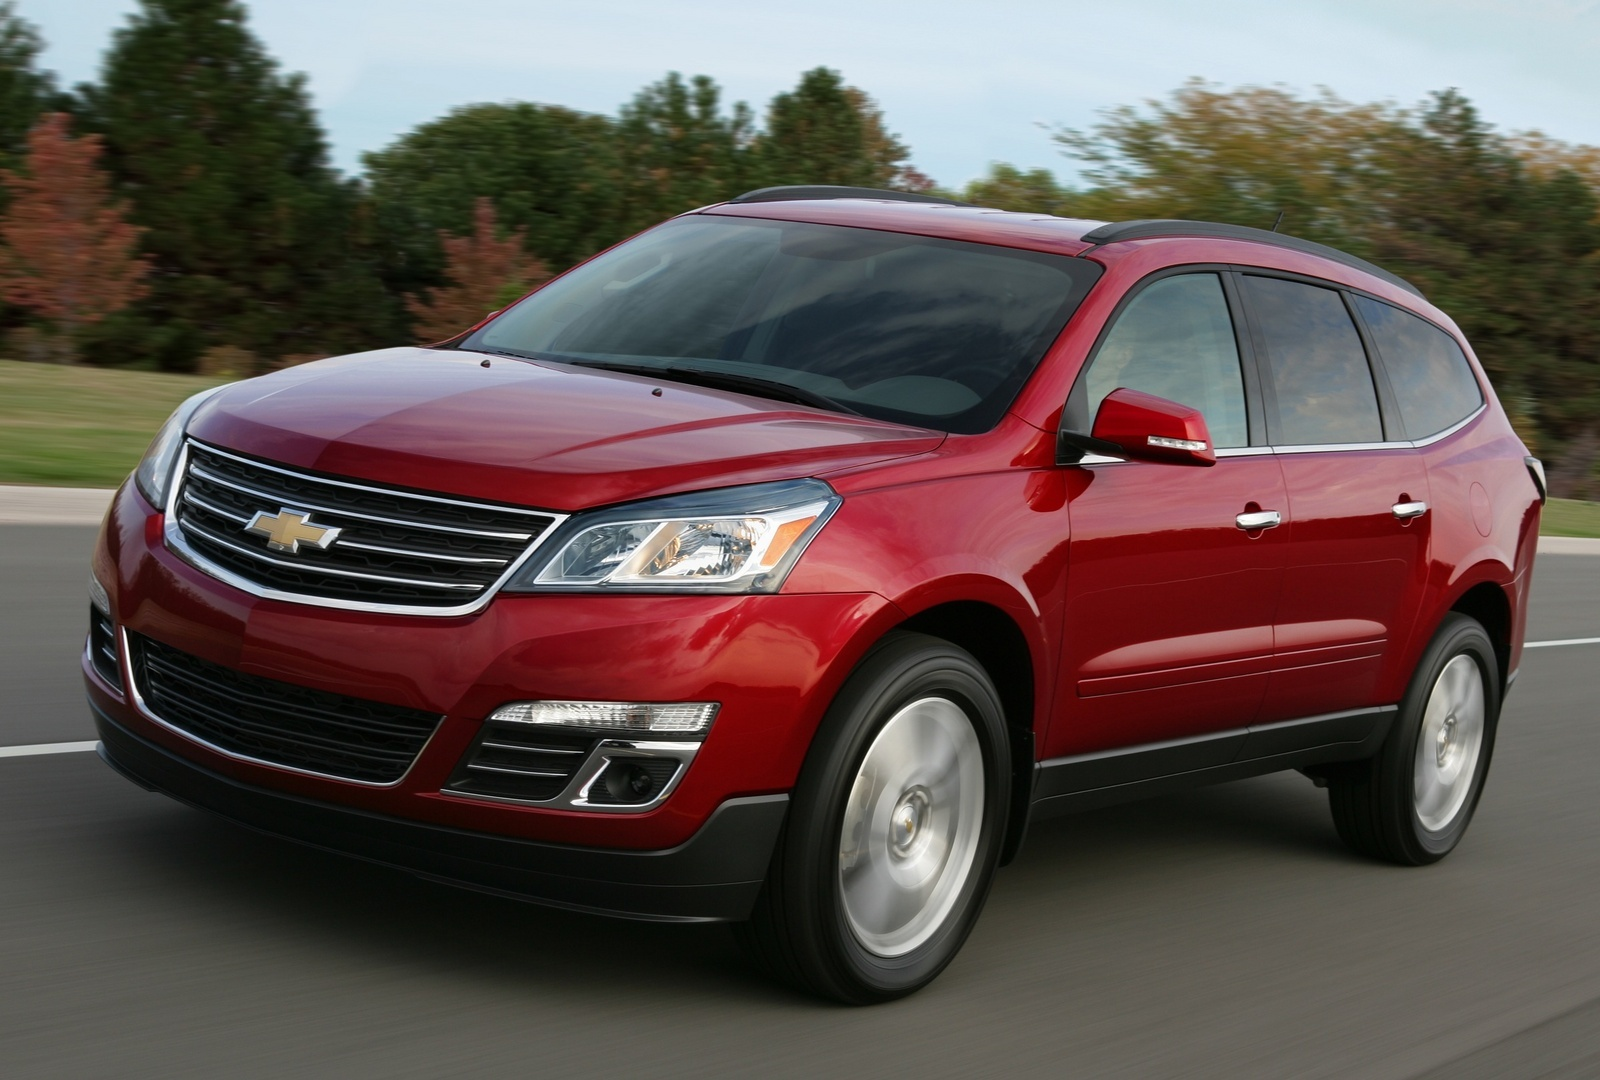 New 2015 2016 Chevrolet Traverse For Sale Cargurus